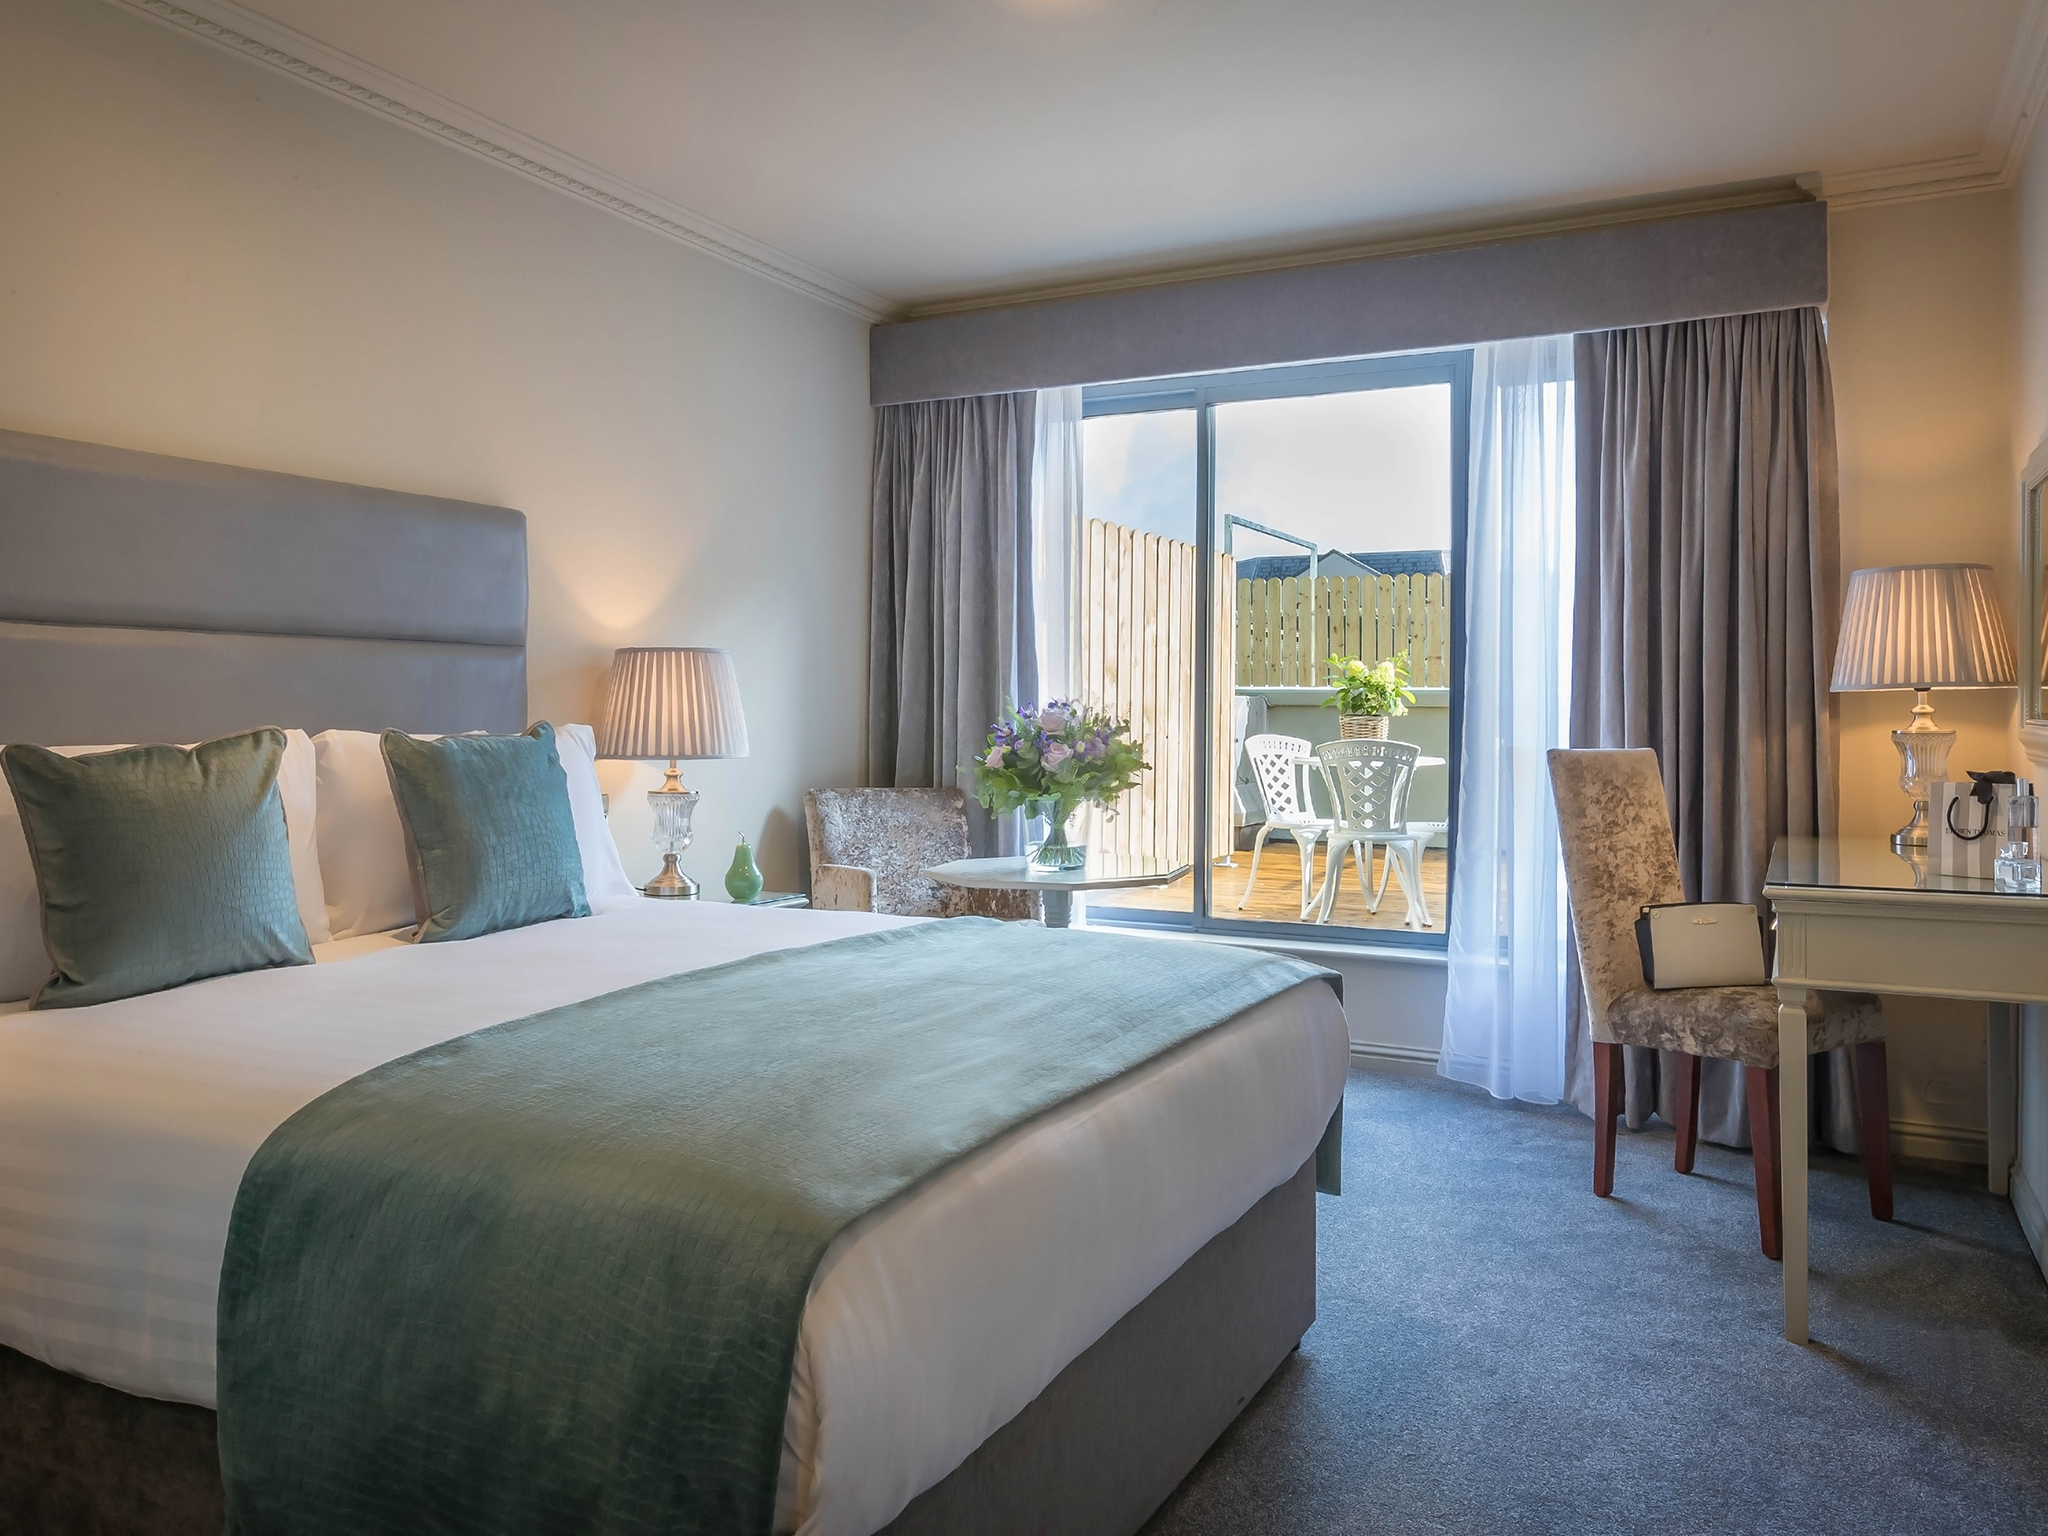 Hotel for Galway Races in Galway City Centre. Boutique Hotel near Eyre Square Galway